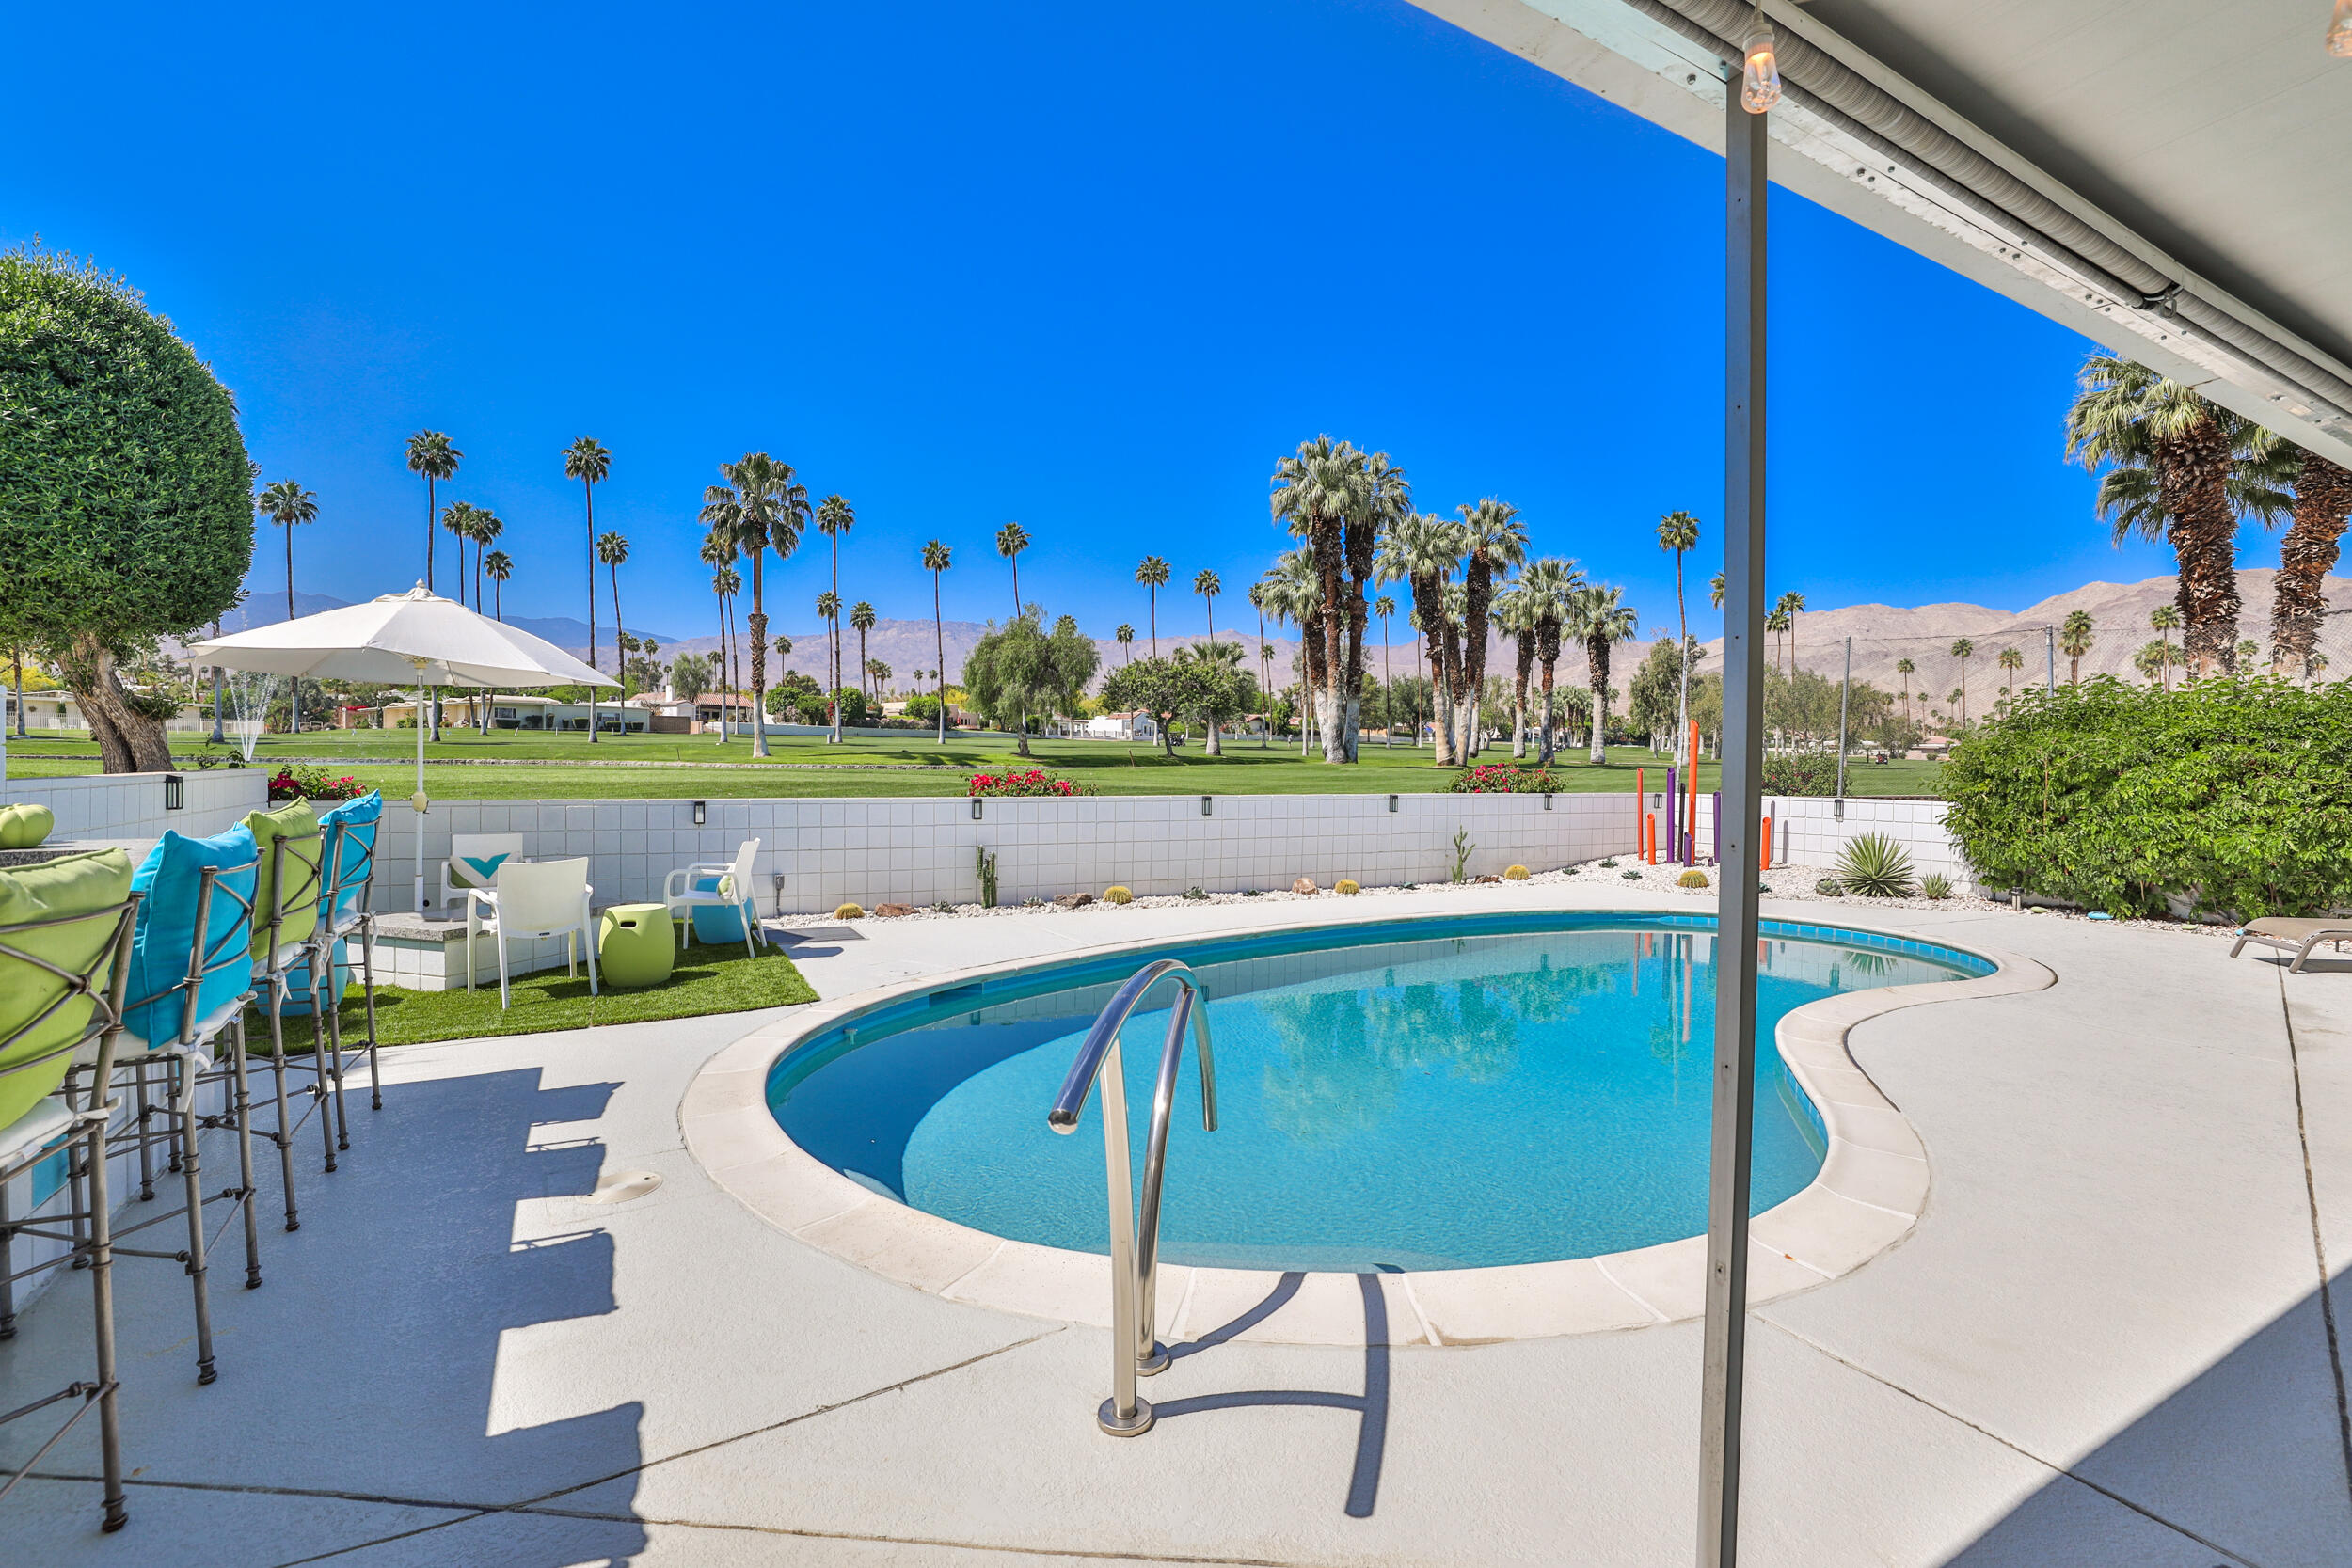 One of a kind!  Mid-century modern condo (Wexler/Harrison team 1962) in South Palm Desert, located on the golf course of Shadow Mountain resort and club. South facing patio with breathtaking views of the mountains, greenbelts, lake and fountain.  The north facing views overlooking the golf course and mountains from the guest bedroom and living room are spectacular.  This condo is beautifully updated with new windows, floors and bathrooms.   Kitchen is refurbished, has modern appliances with a beverage fridge. Separate laundry room has extra storage and a wine cooler.   The living room is bumped out, which could be converted to a 3rd bedroom or den.   The large patio offers a lot of room for entertaining around a sparkling salt water pool.    Very low HOA fees , includes front landscaping, trash, exterior paint and earthquake insurance.   Turnkey furnished per inventory. Walking distance to El Paseo! Come and see this unique property!